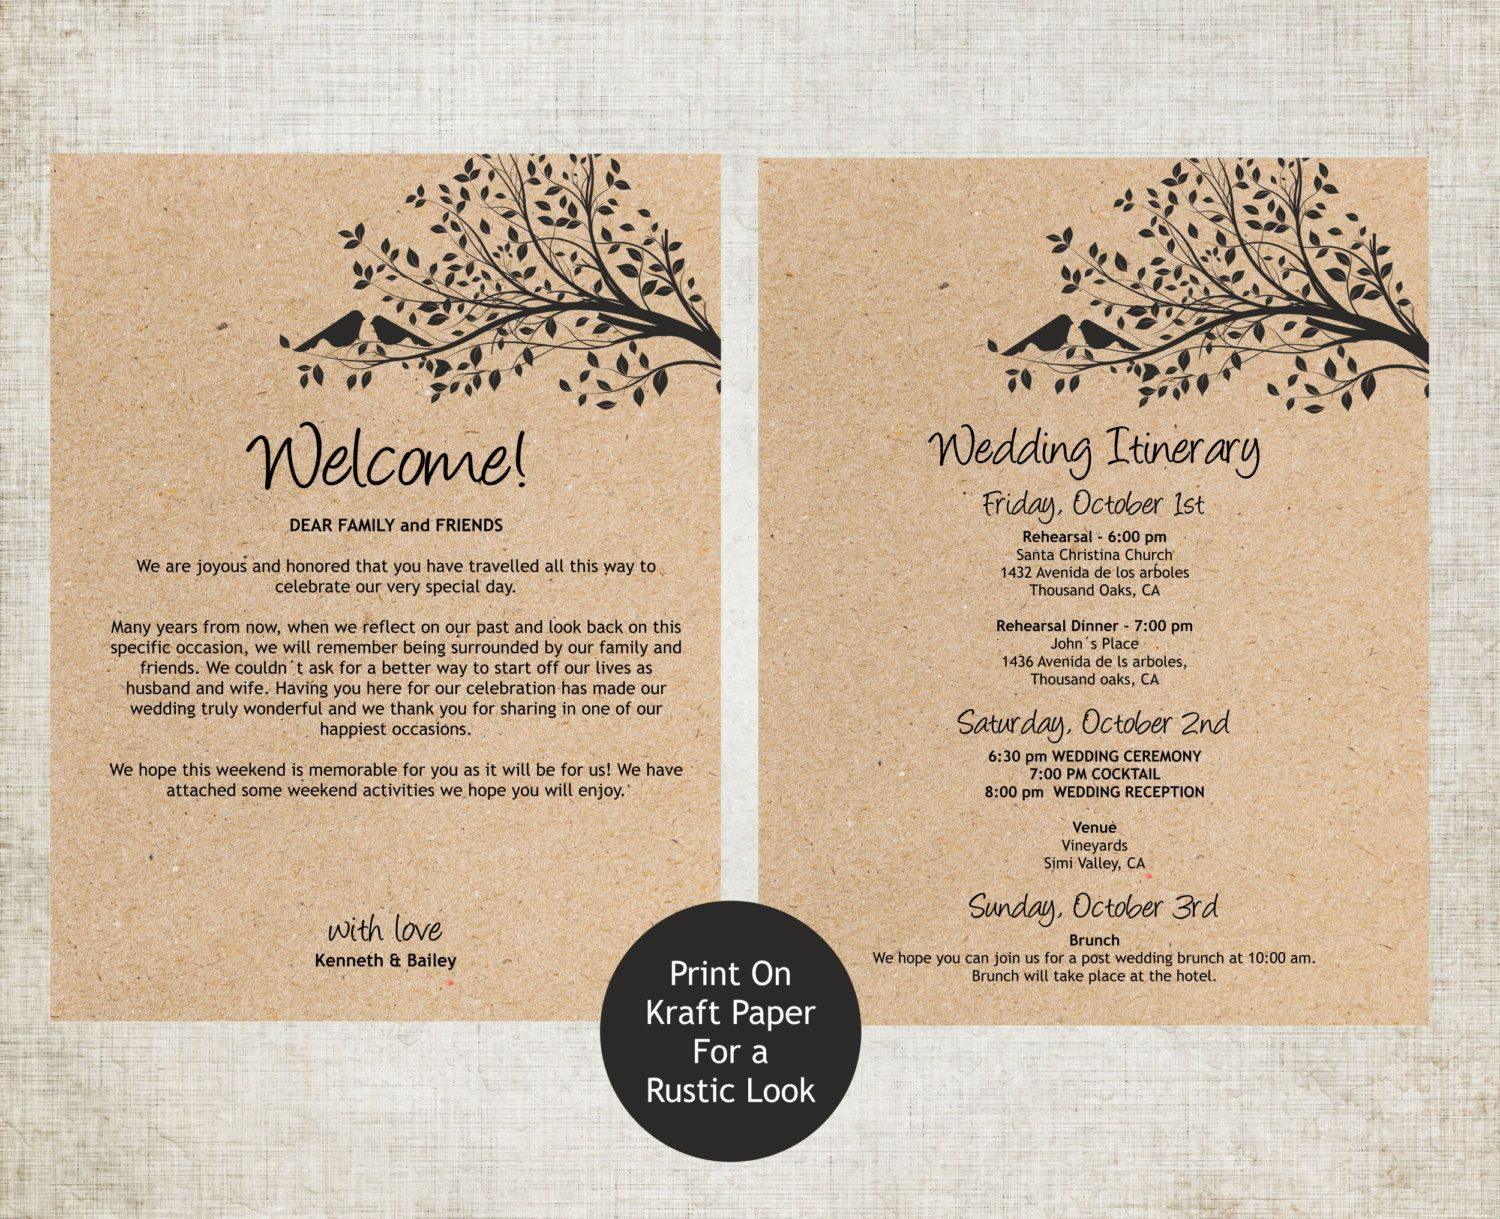 006 Unbelievable Destination Wedding Welcome Letter And Itinerary Template High Def Full